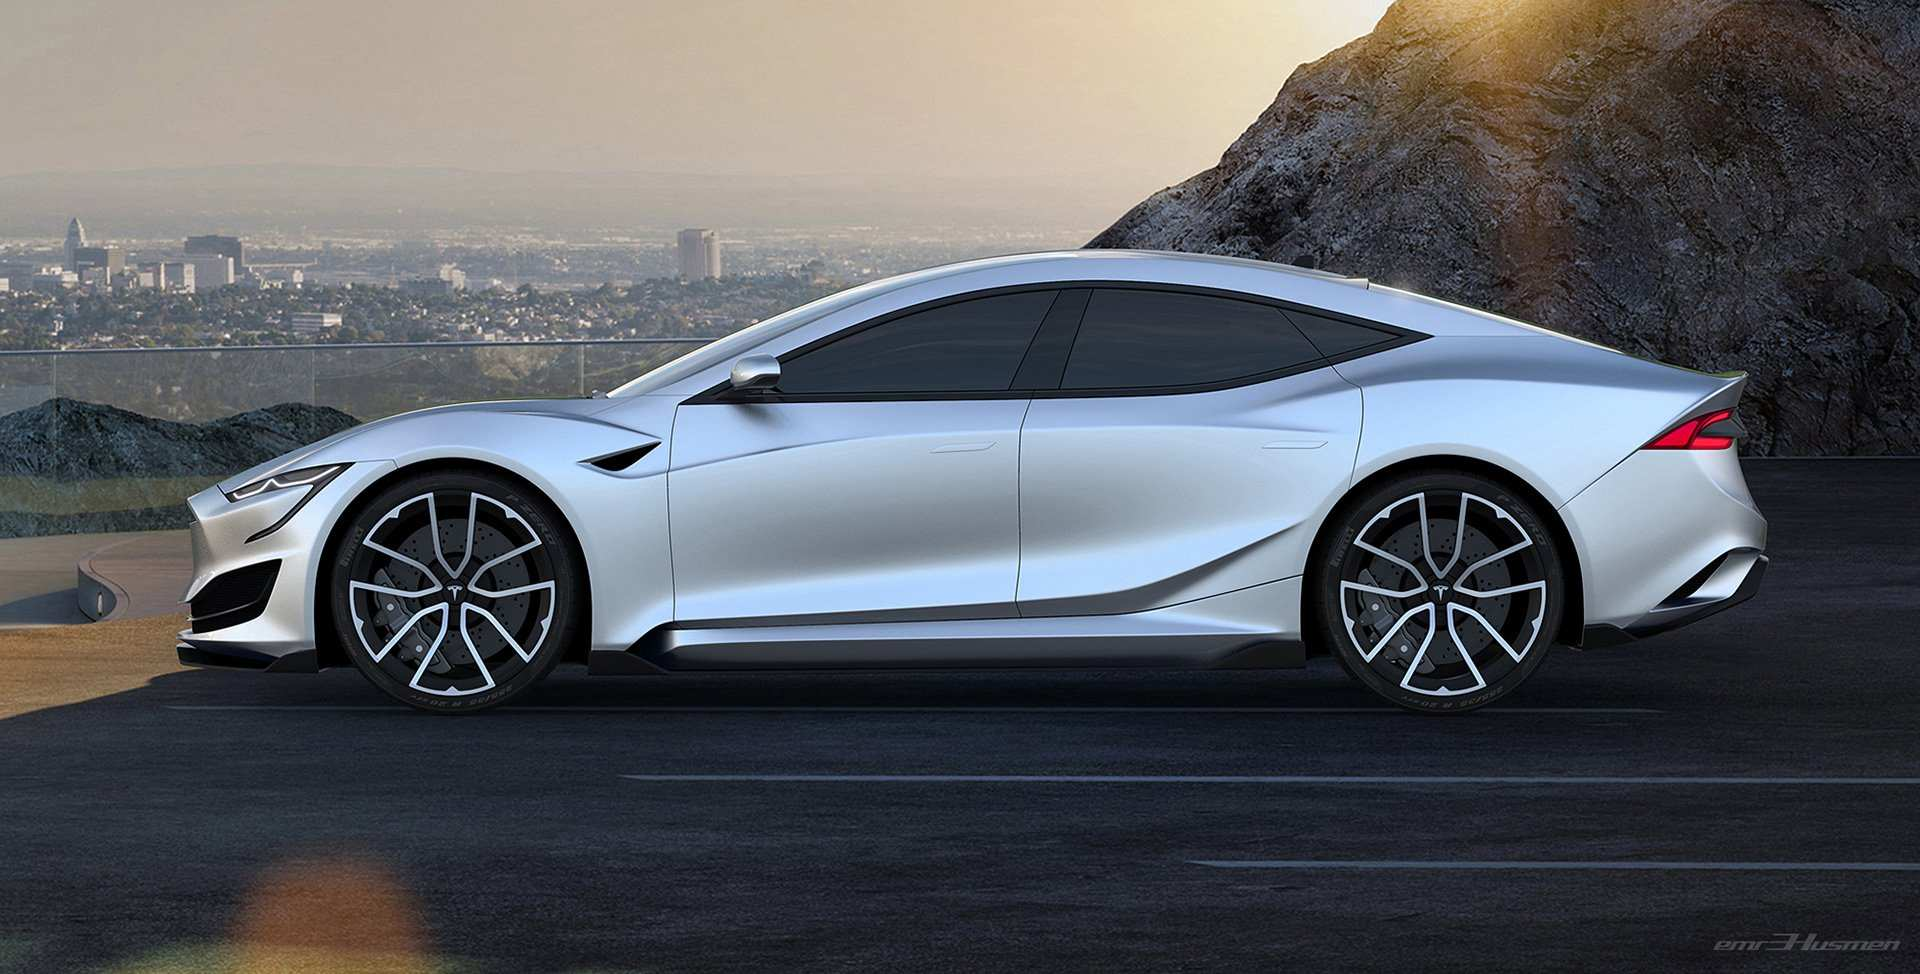 94 A 2020 Tesla Model S Picture